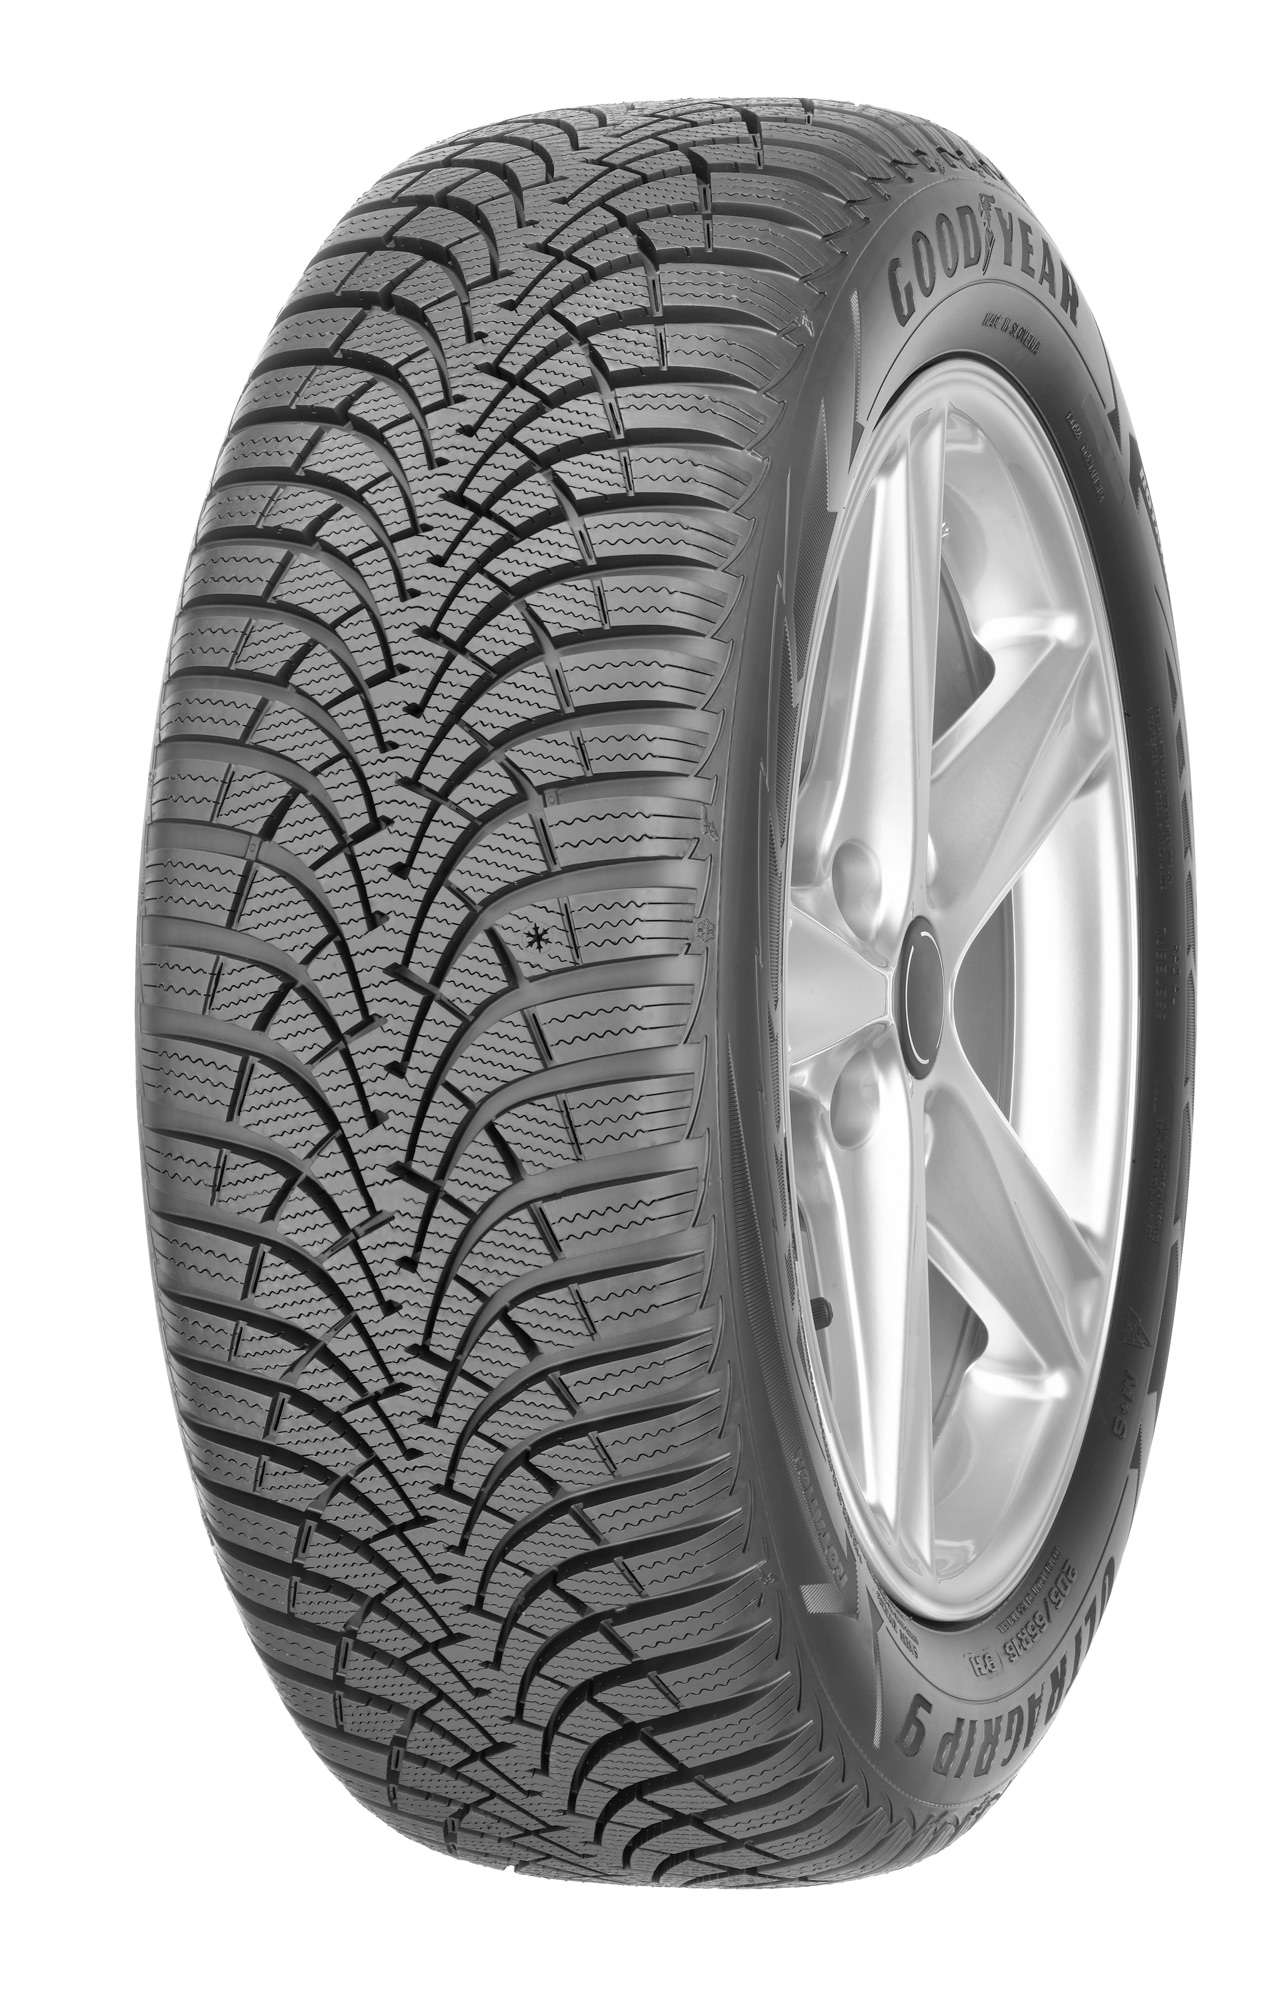 205/60R16 92H Ultra Grip 9 GoodYear